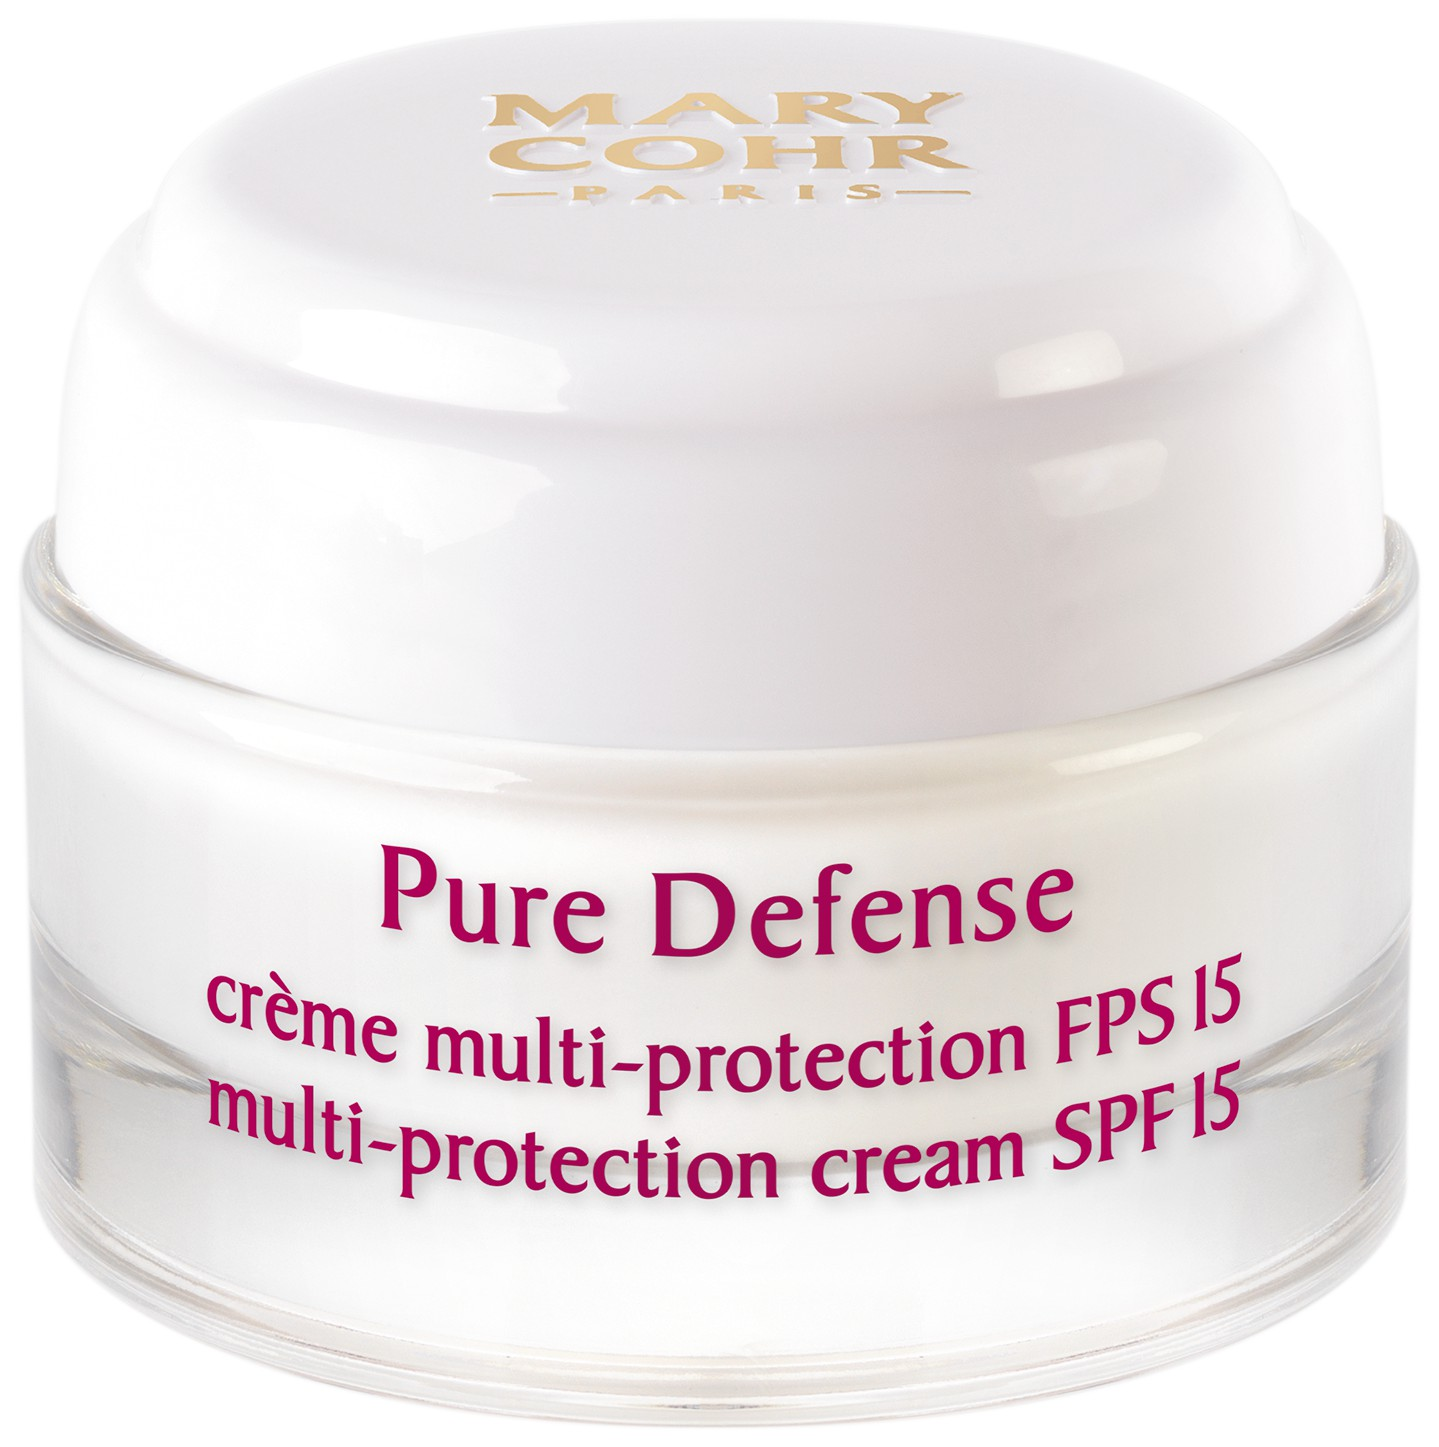 Pure Defense Crème Multi-protection SPF 15